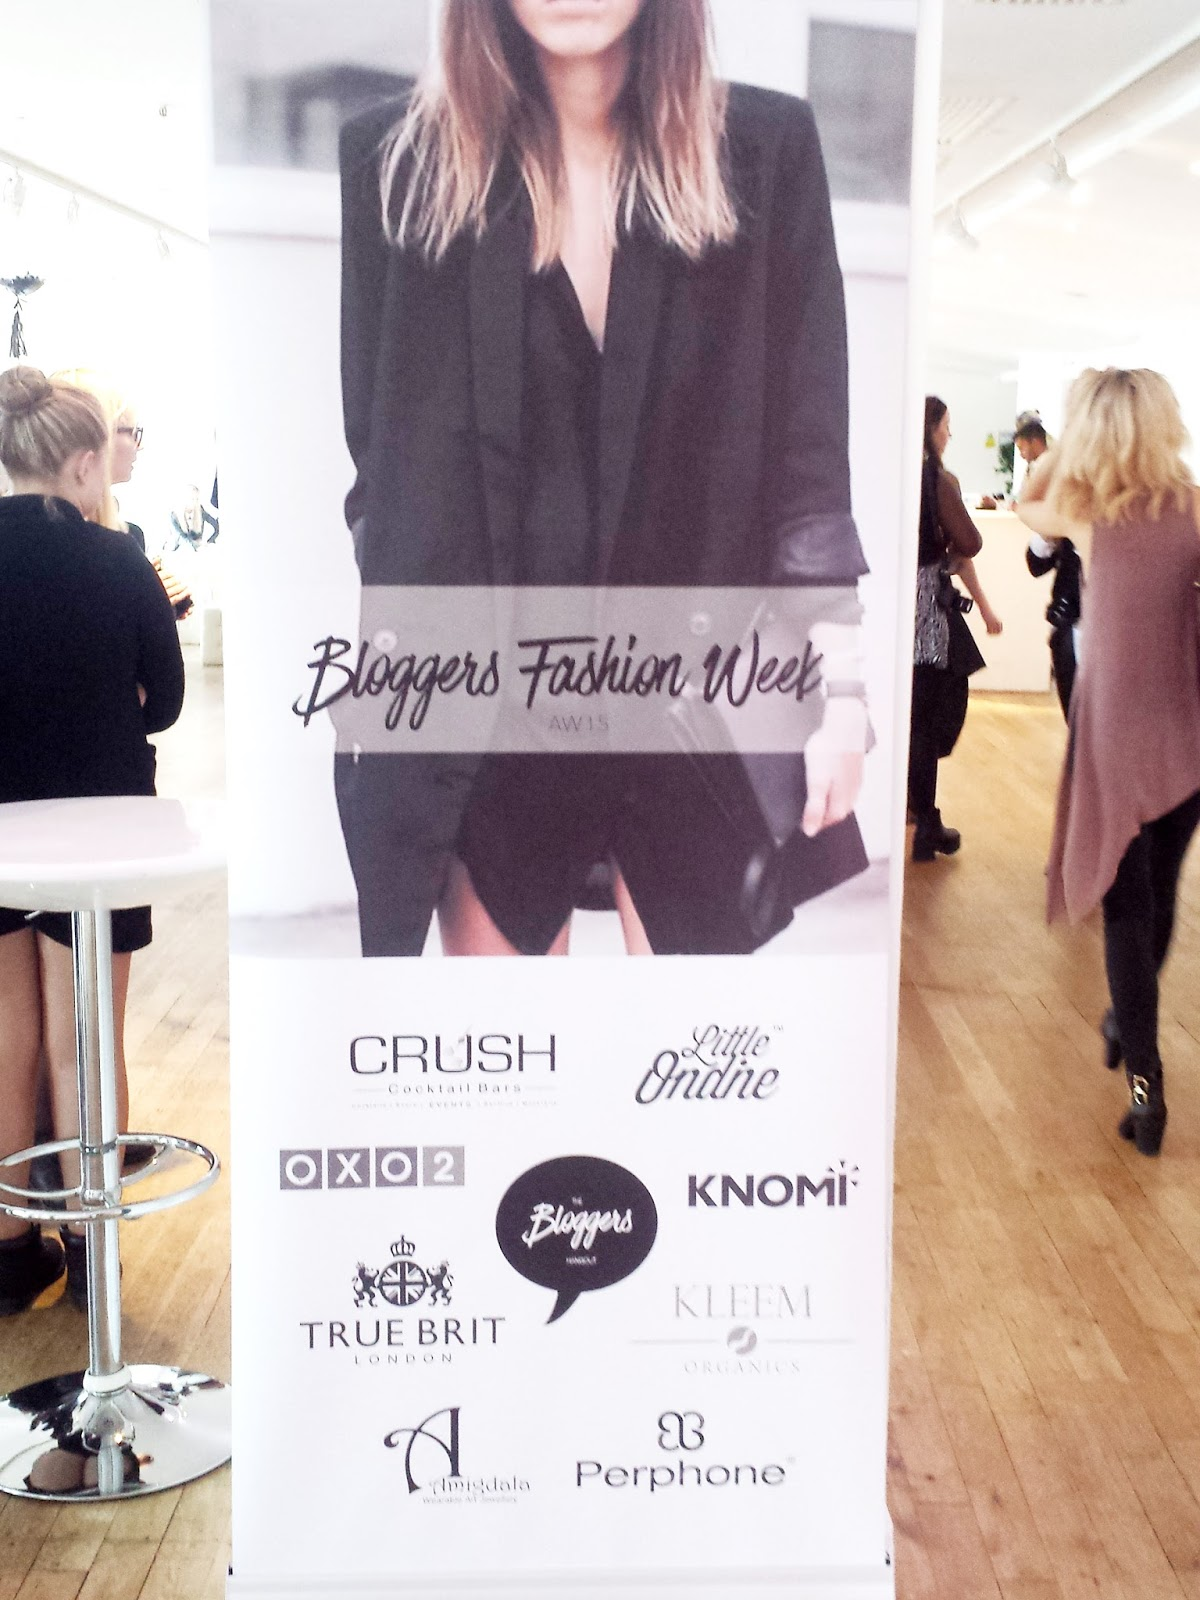 Bloggers Fashion Week Event in London with Bloggers Hangout #BLFW